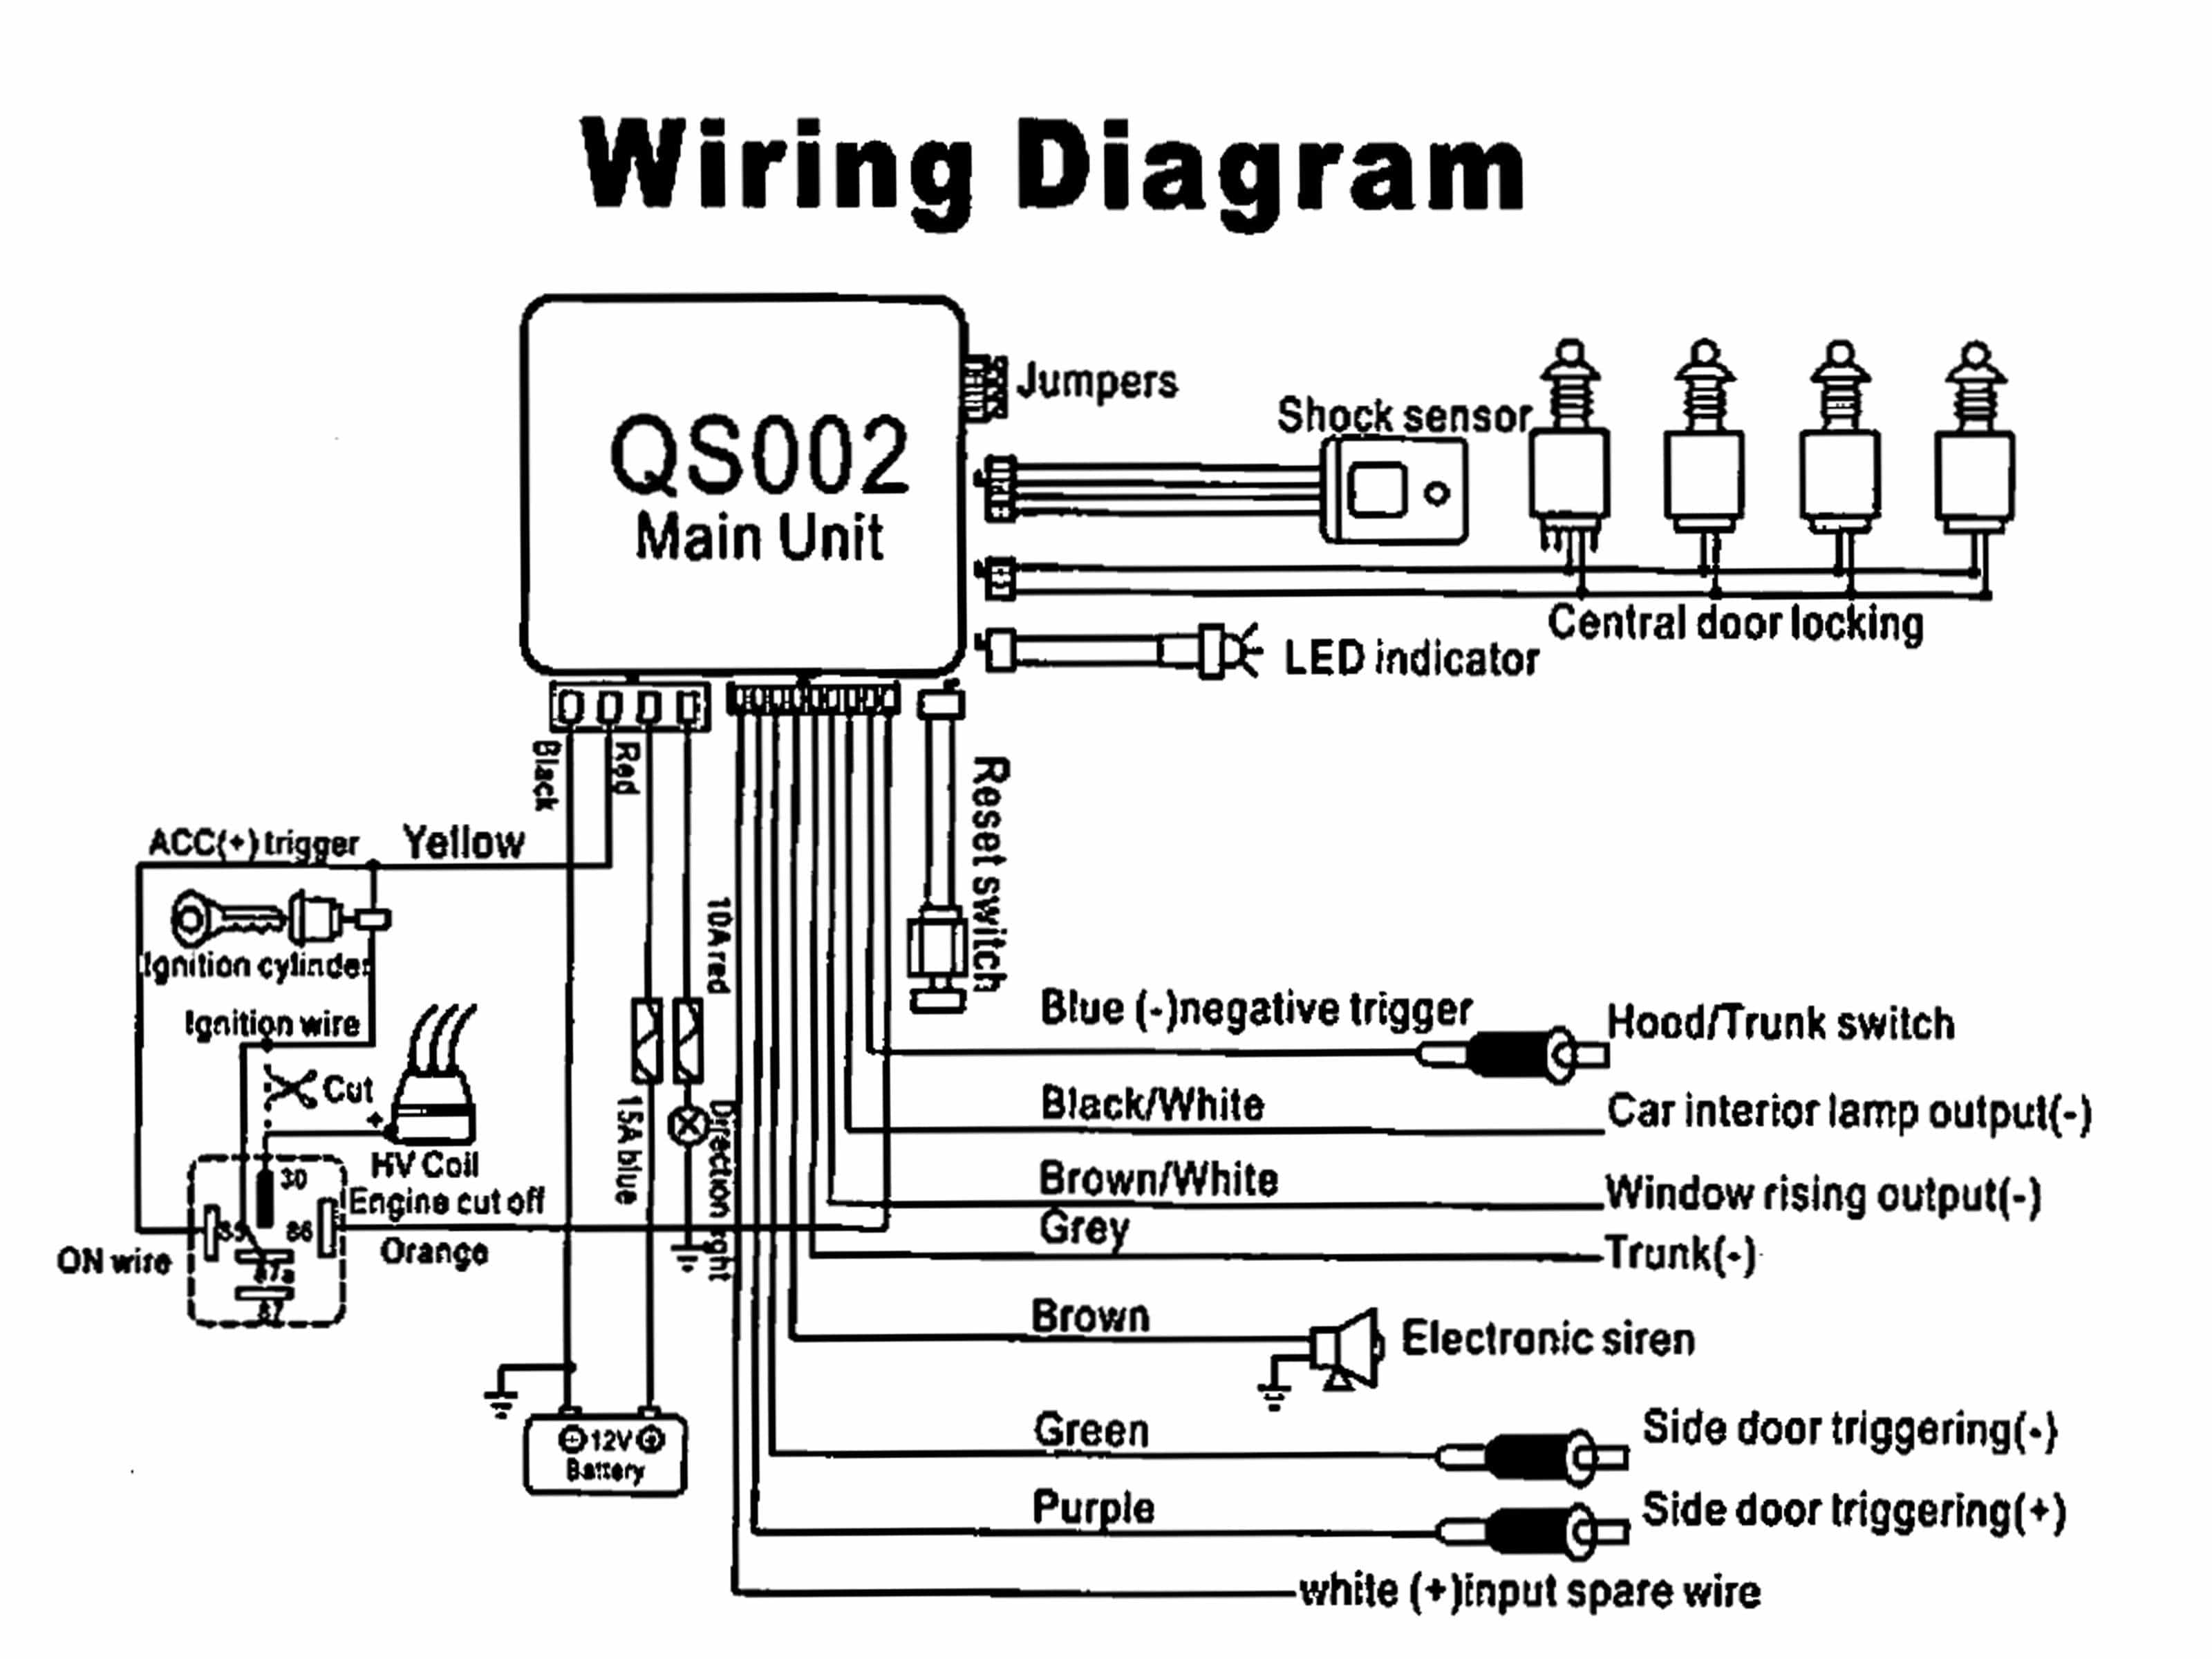 AlarmInstructions_7a98a2bc d189 4c5b 99b3 c774abdbef28 clarion cmd5 wiring diagram wiring diagram shrutiradio  at pacquiaovsvargaslive.co